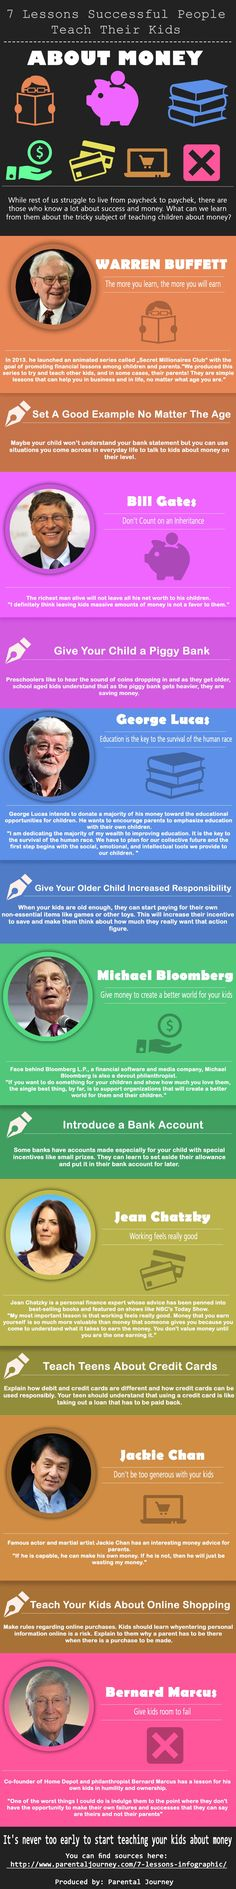 How-To-Teach-Kids-About-Money-1